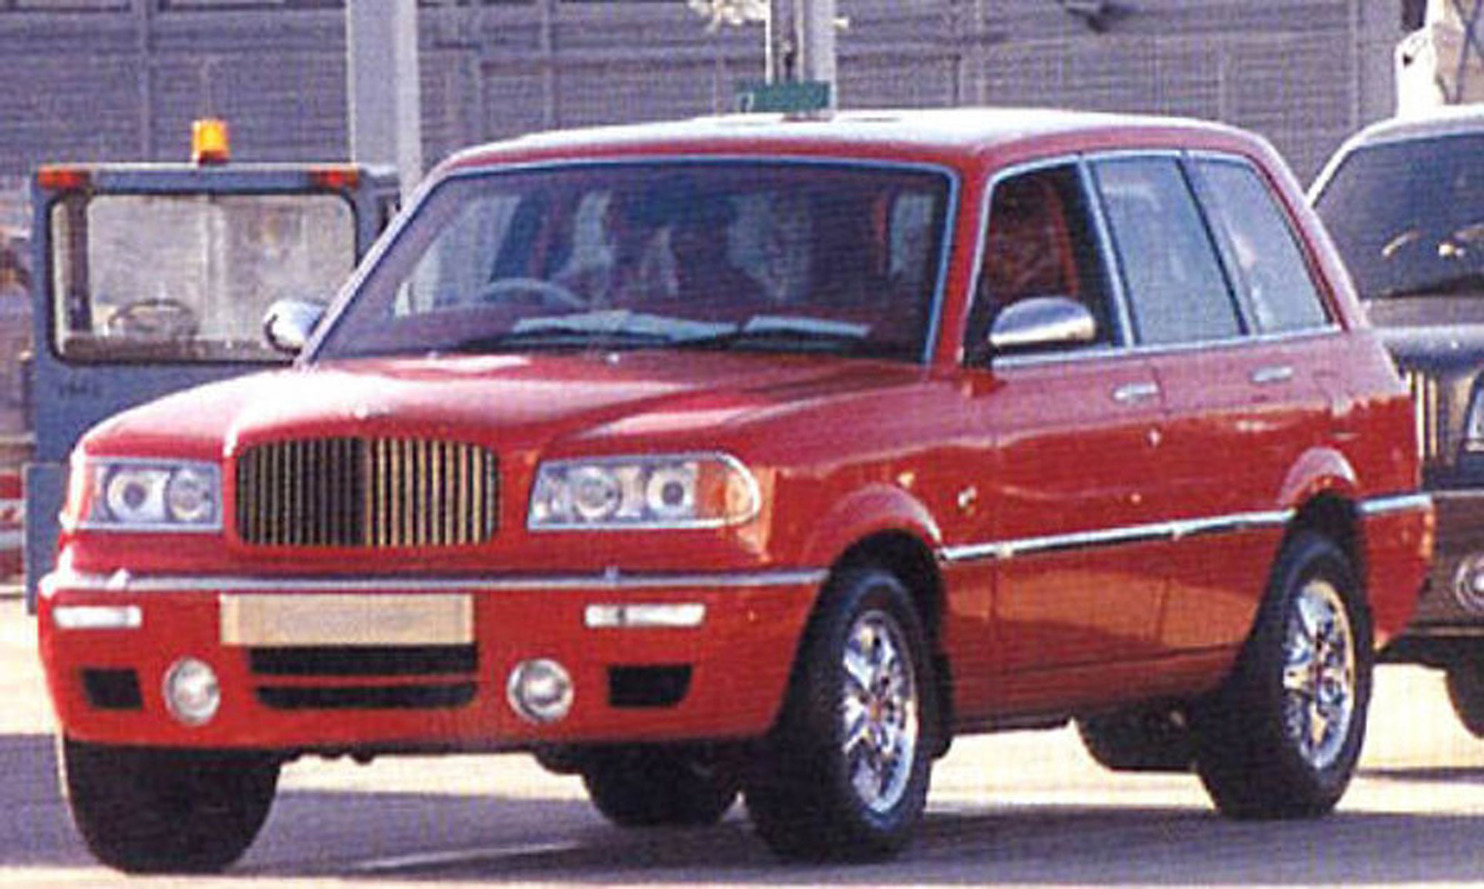 Bentley's First SUV: Built In 1994 For A Sultan